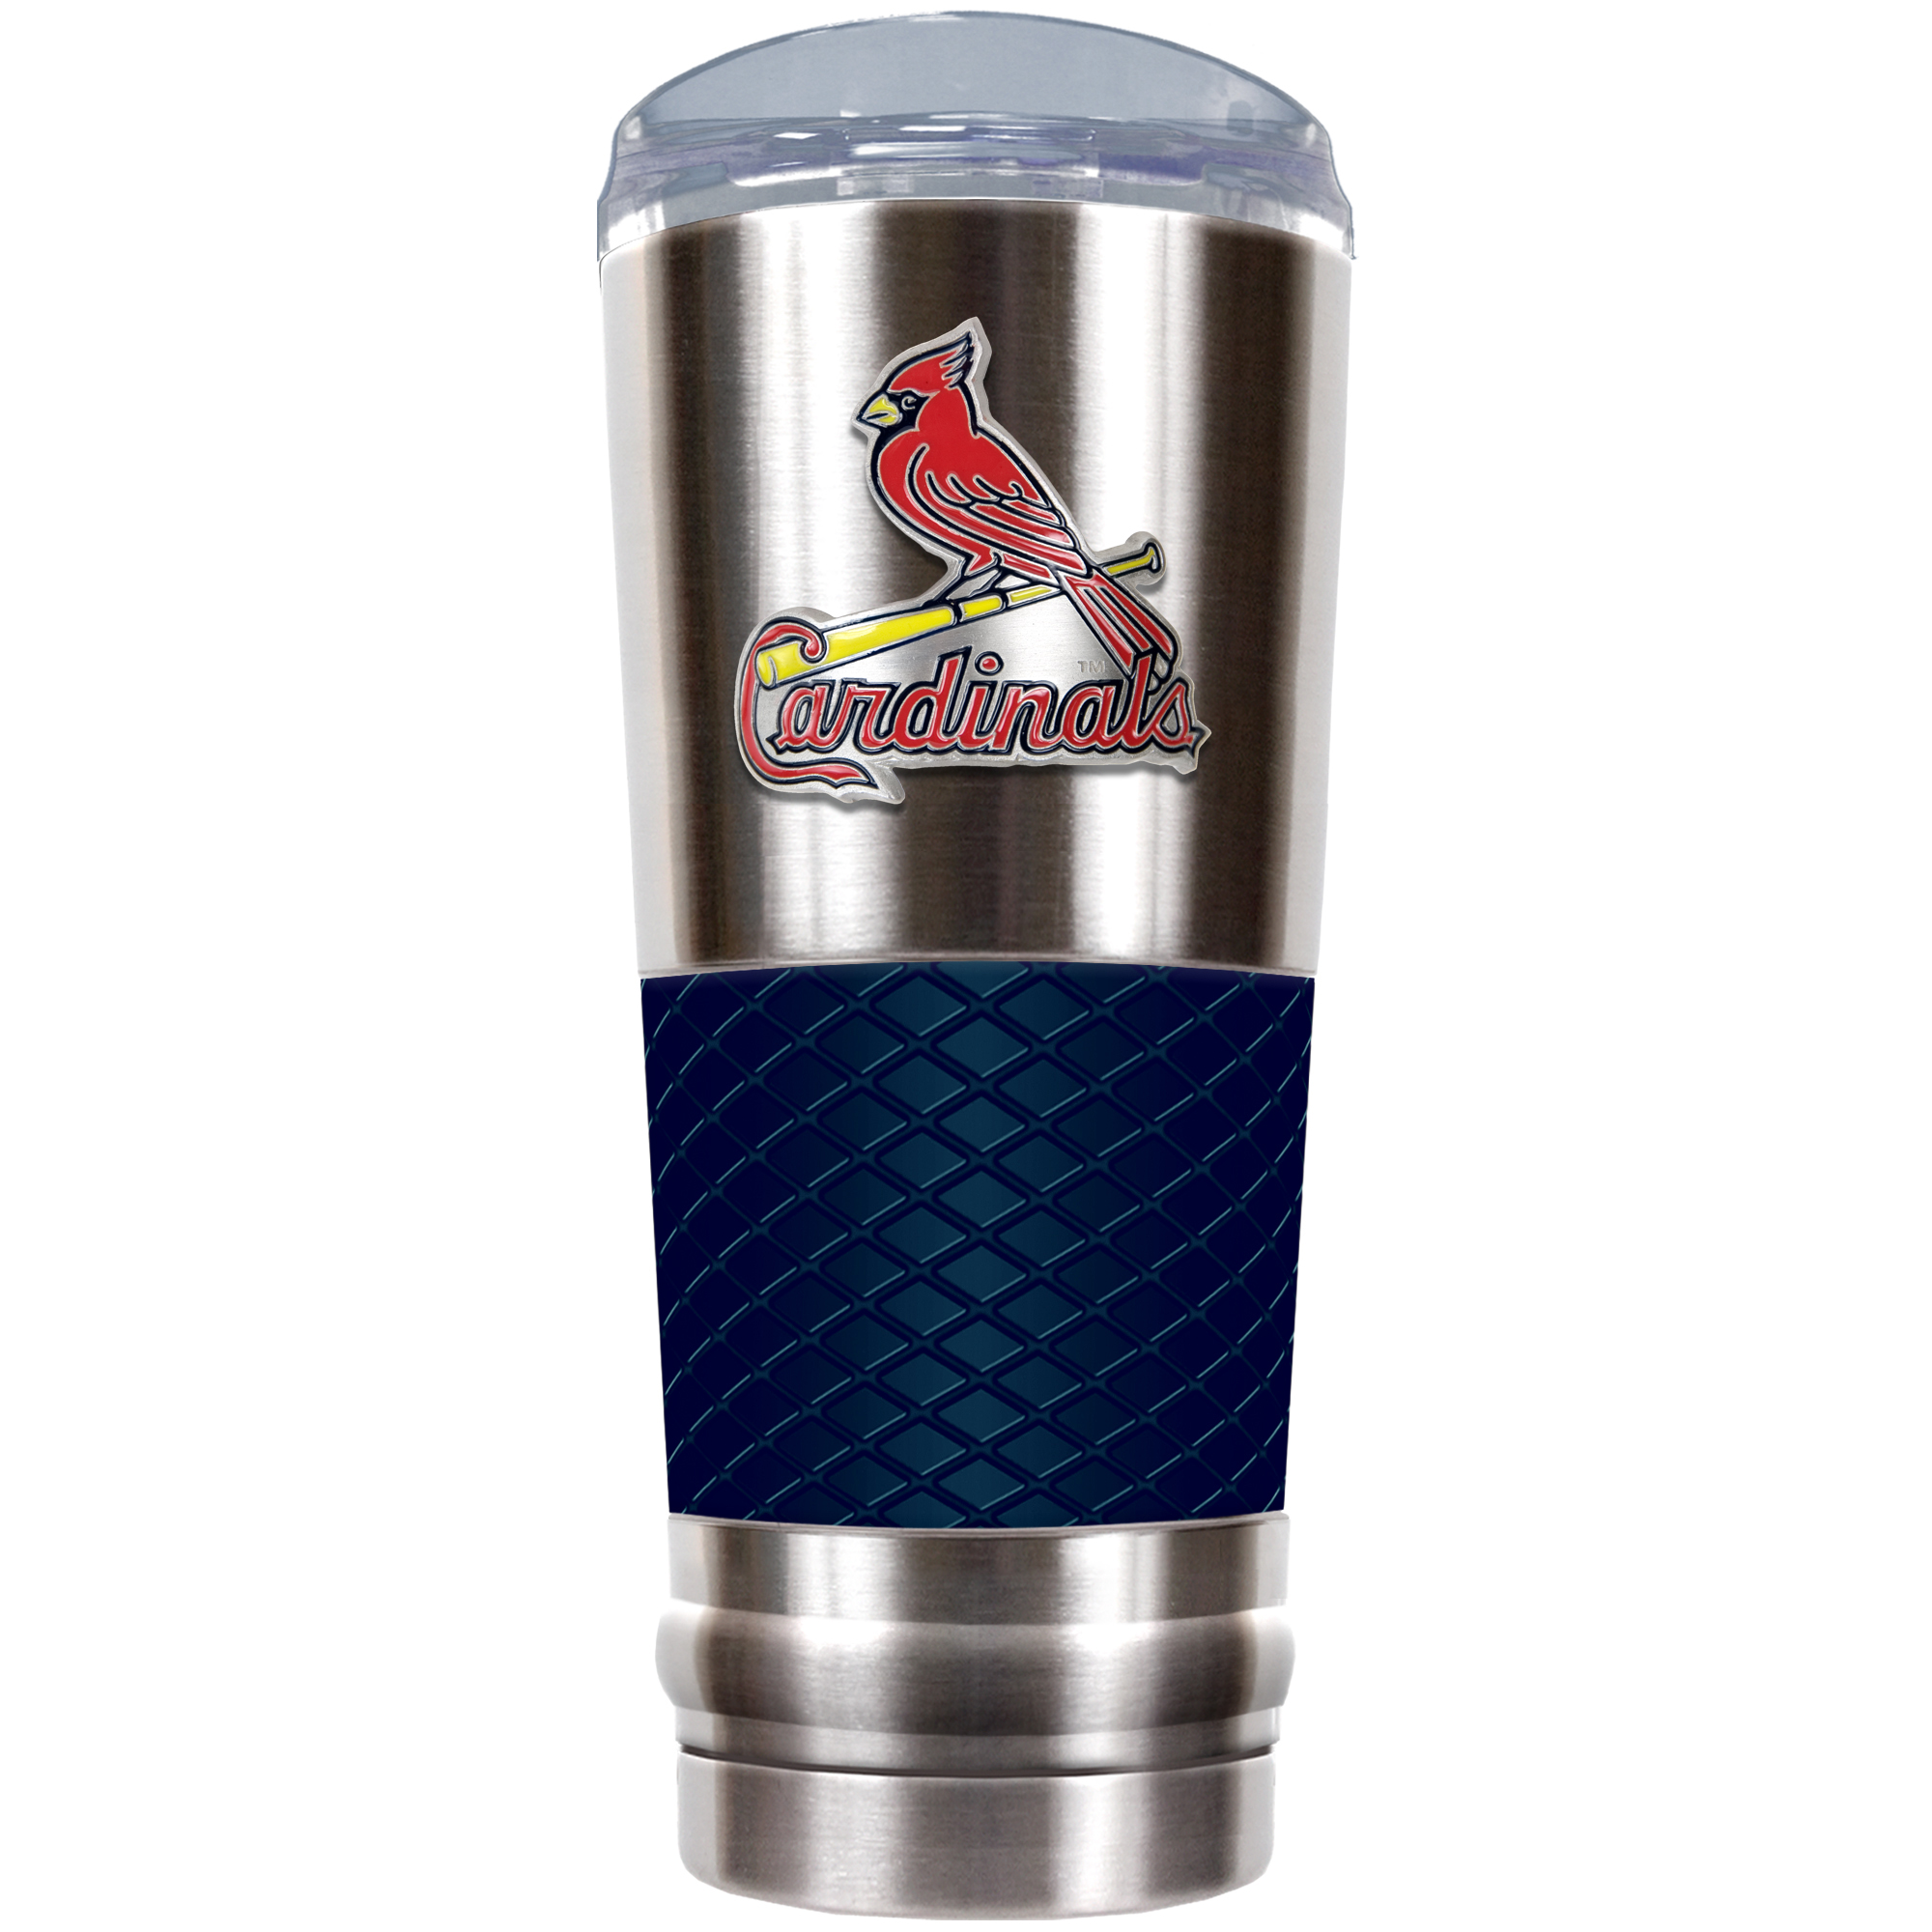 St. Louis Cardinals 24oz. Draft Tumbler - Blue - No Size